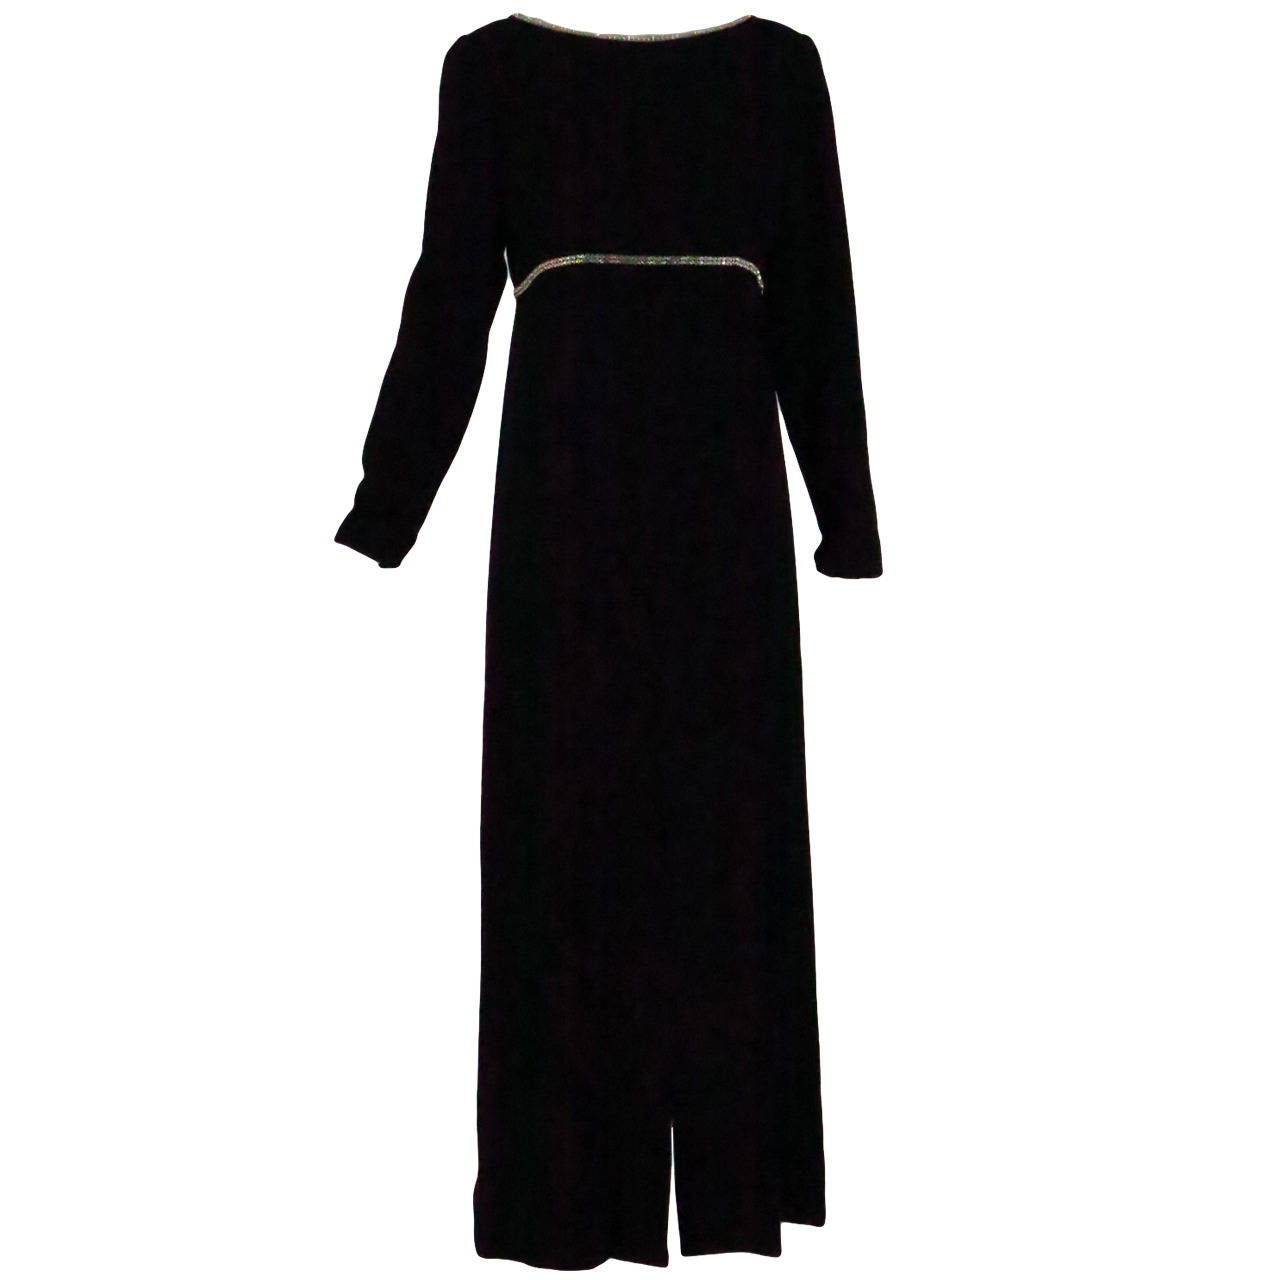 1960s Mollie Parnis wool crepe gown with sequin trim